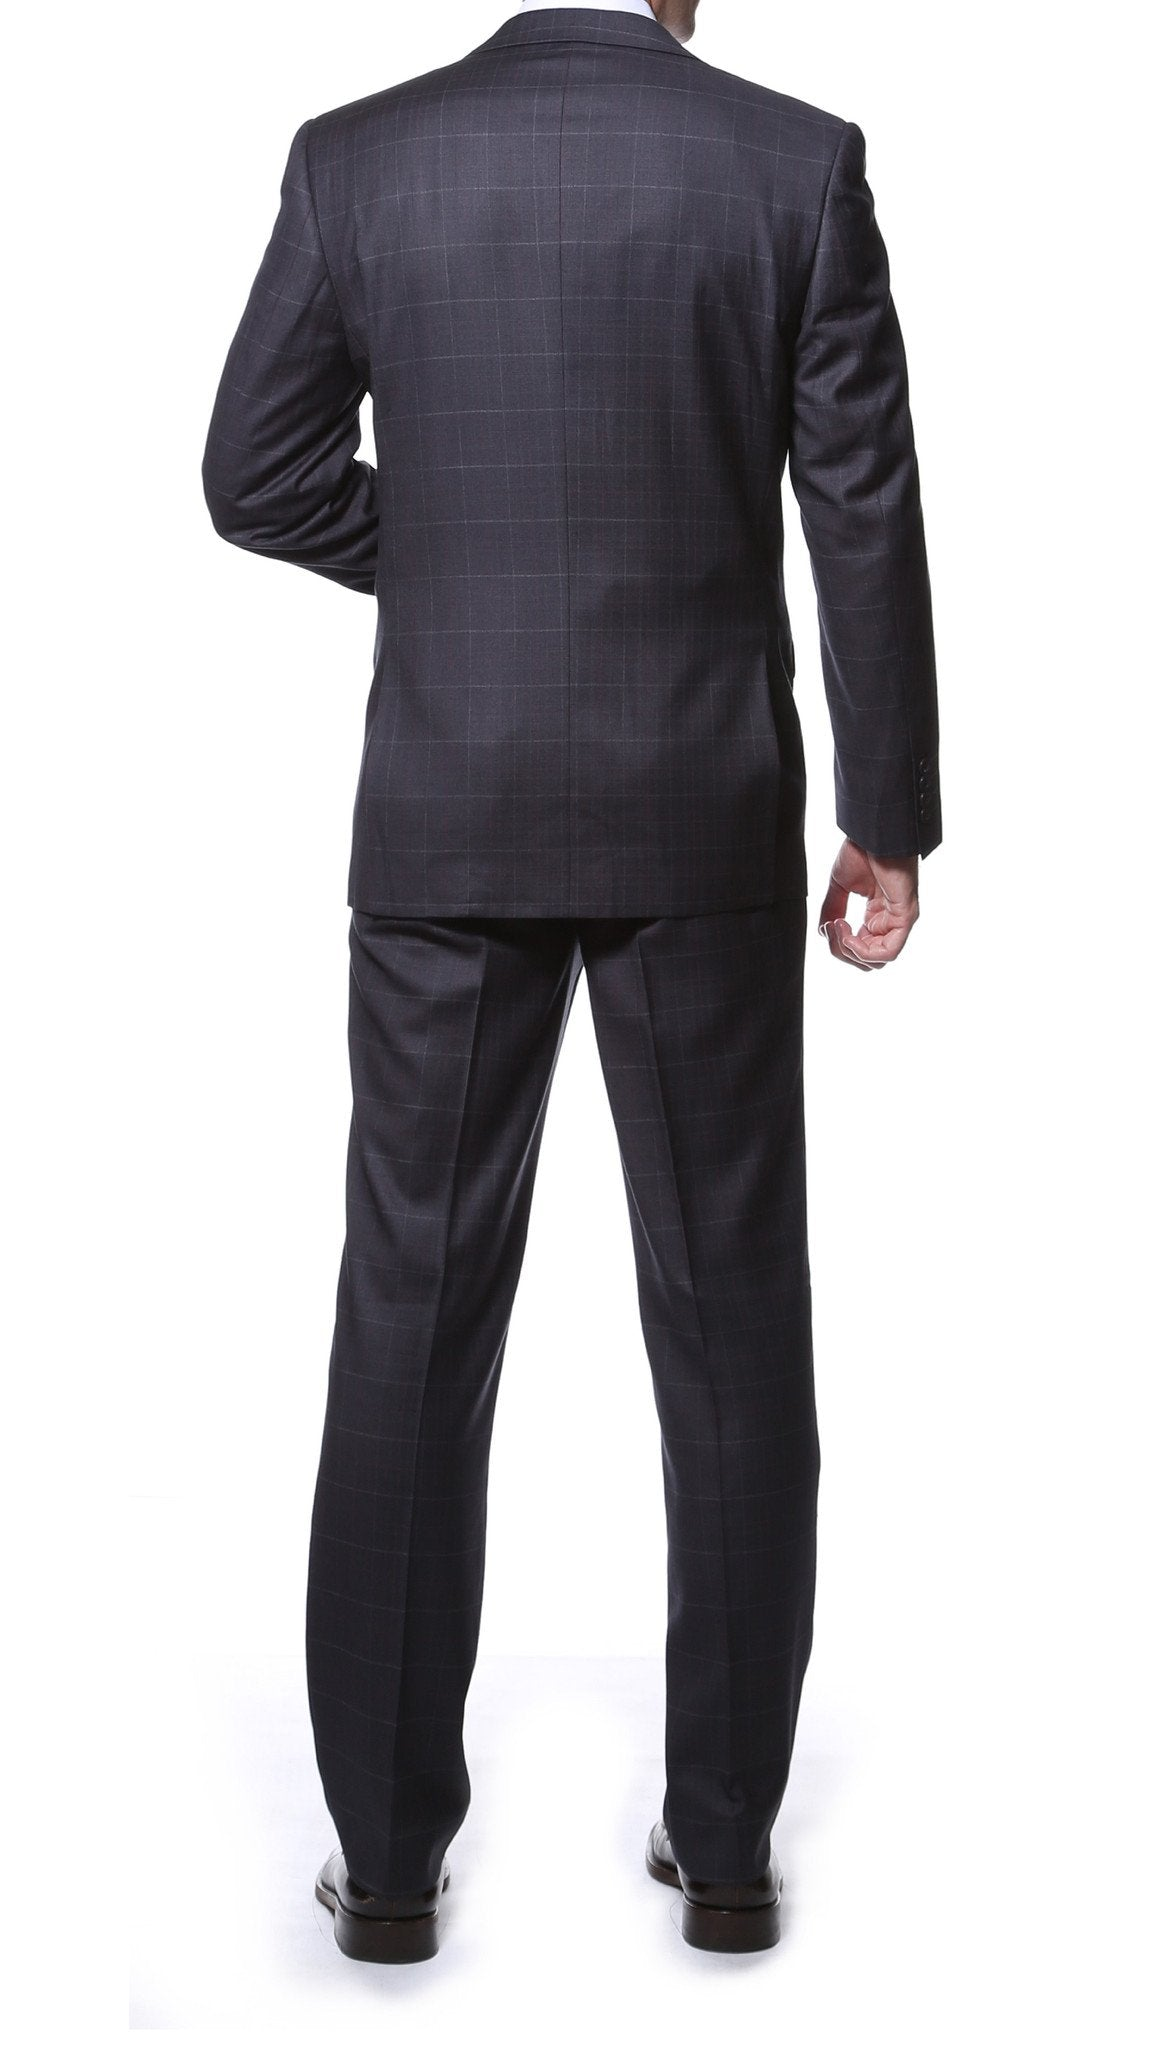 Lincoln Charcoal 2pc Slim Fit Plaid Suit - Giorgio's Menswear